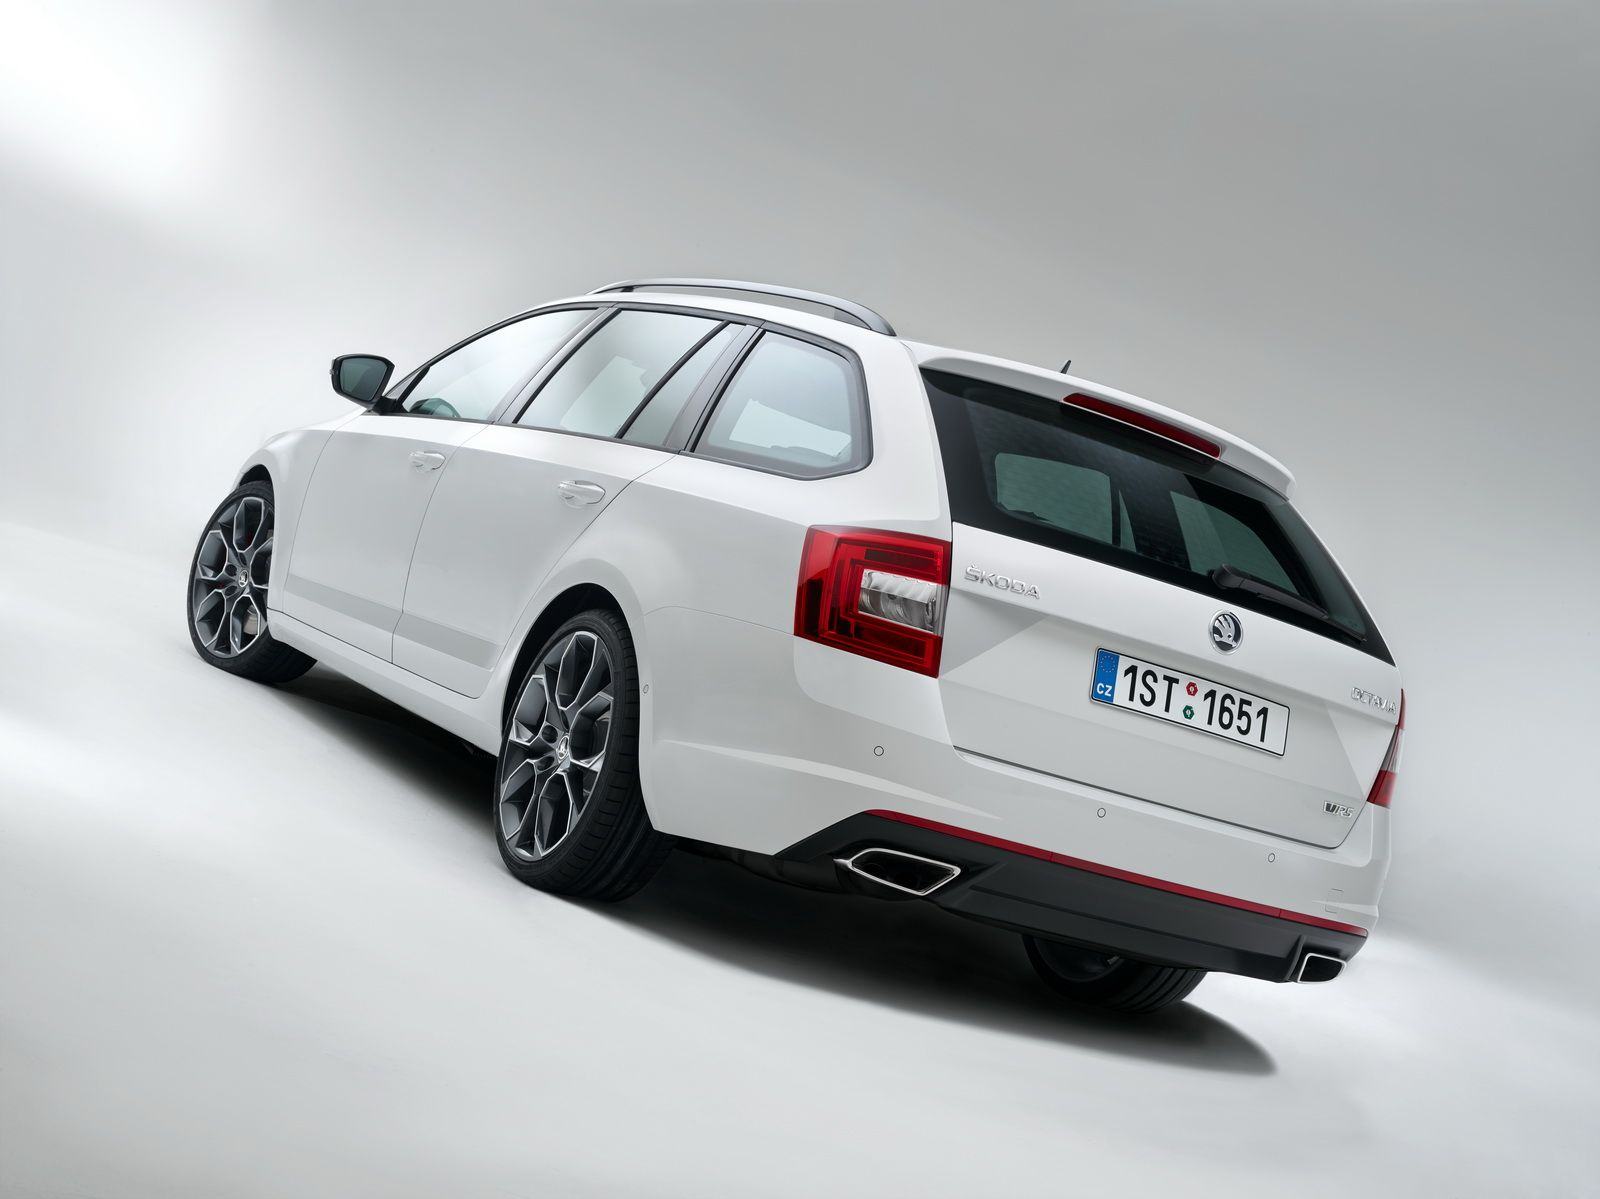 Skoda Octavia Combi Rs Iii 2013 Copyrighted By Www Skoda